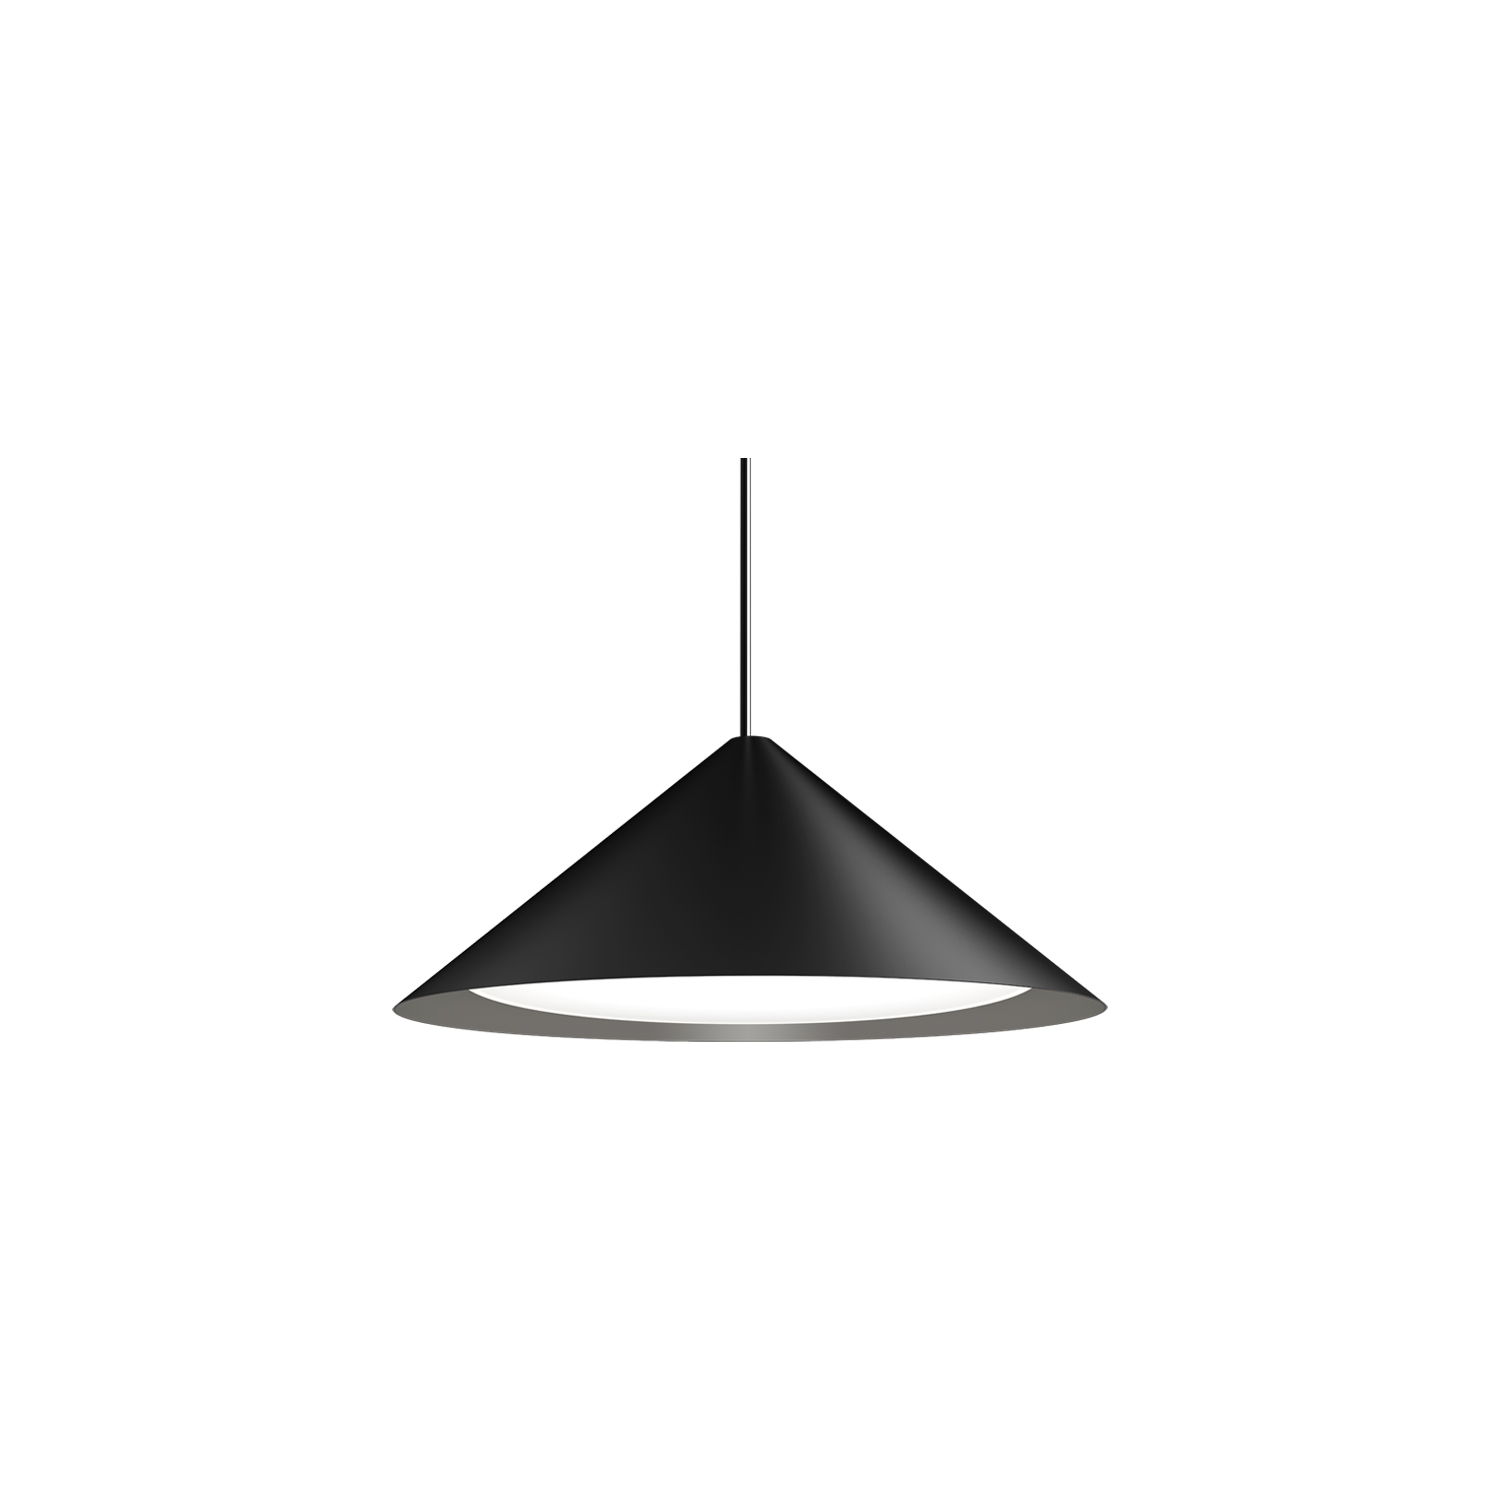 Keglen Pendant Lamp - The pendants distinctive conical shades each have a built-in curved opal insert. This ensures a both attractive and glare-free downward light. Each version of the shade provides its own diffusion of light while the white inner side ensures that its light is reflected flawlessly. A gentle light is also emitted upwards through a uniform, discreet opening in the top of the shades which adds to the perfect ambiance.  Cable length is 3m. | Matter of Stuff